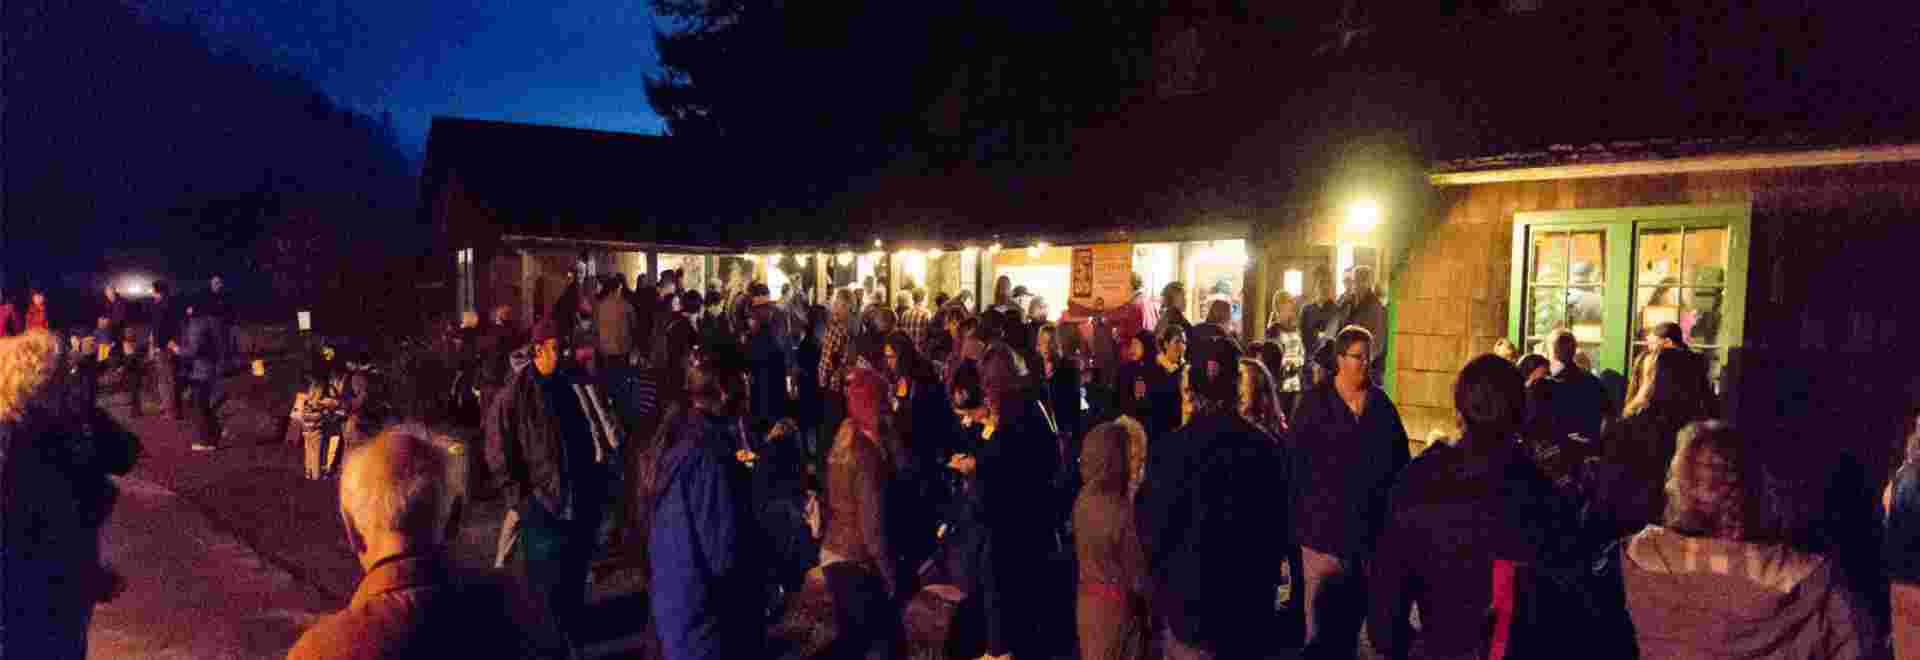 Attendees of the Candlelight Walk at Prairie Creek Redwoods State Park